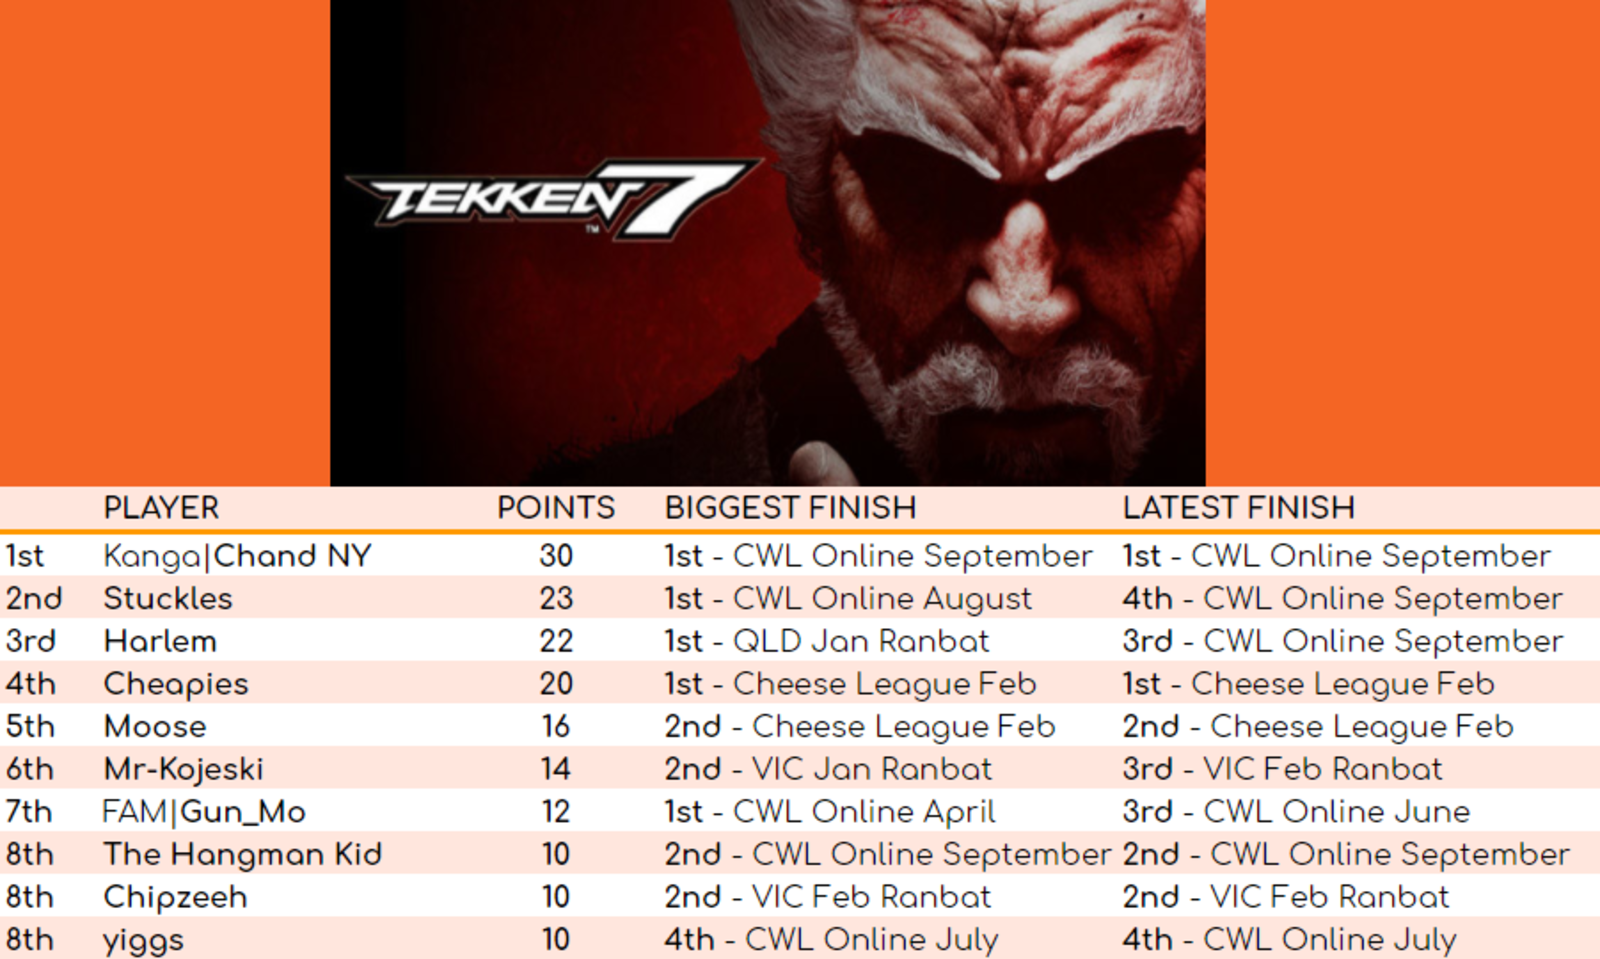 Tekken 7 Leaderboard for September